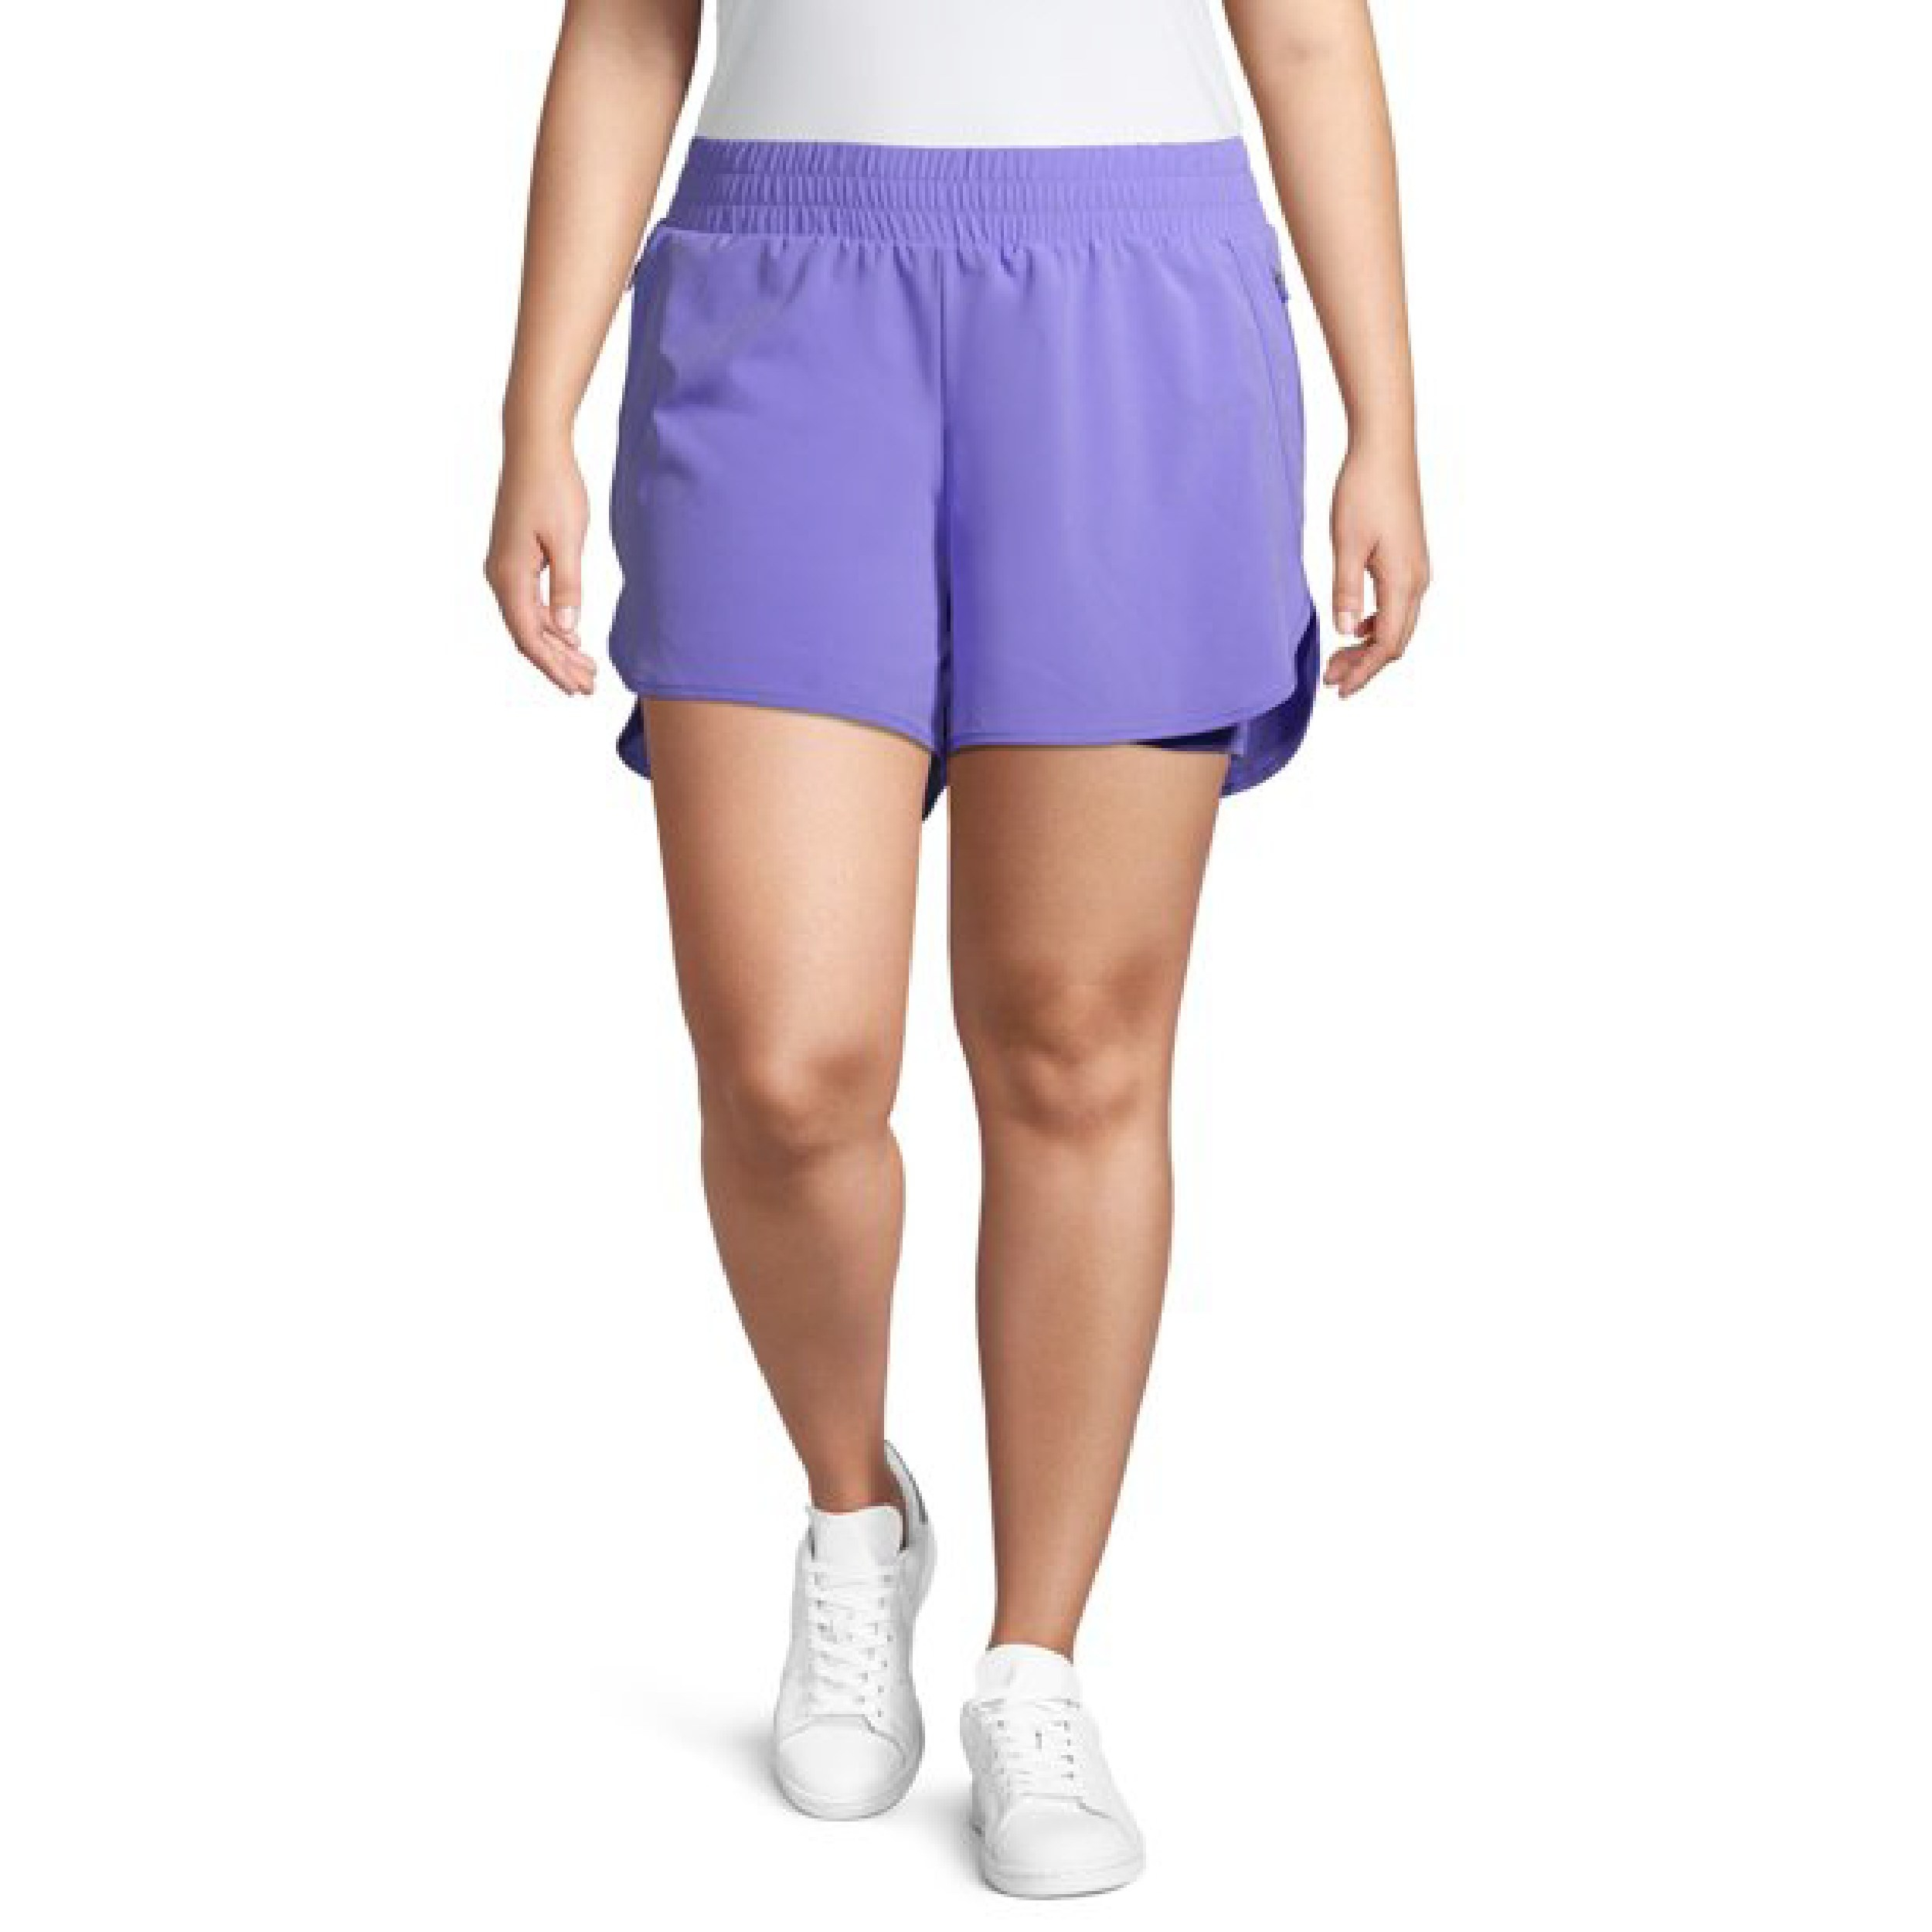 Model wearing the purple gym shorts